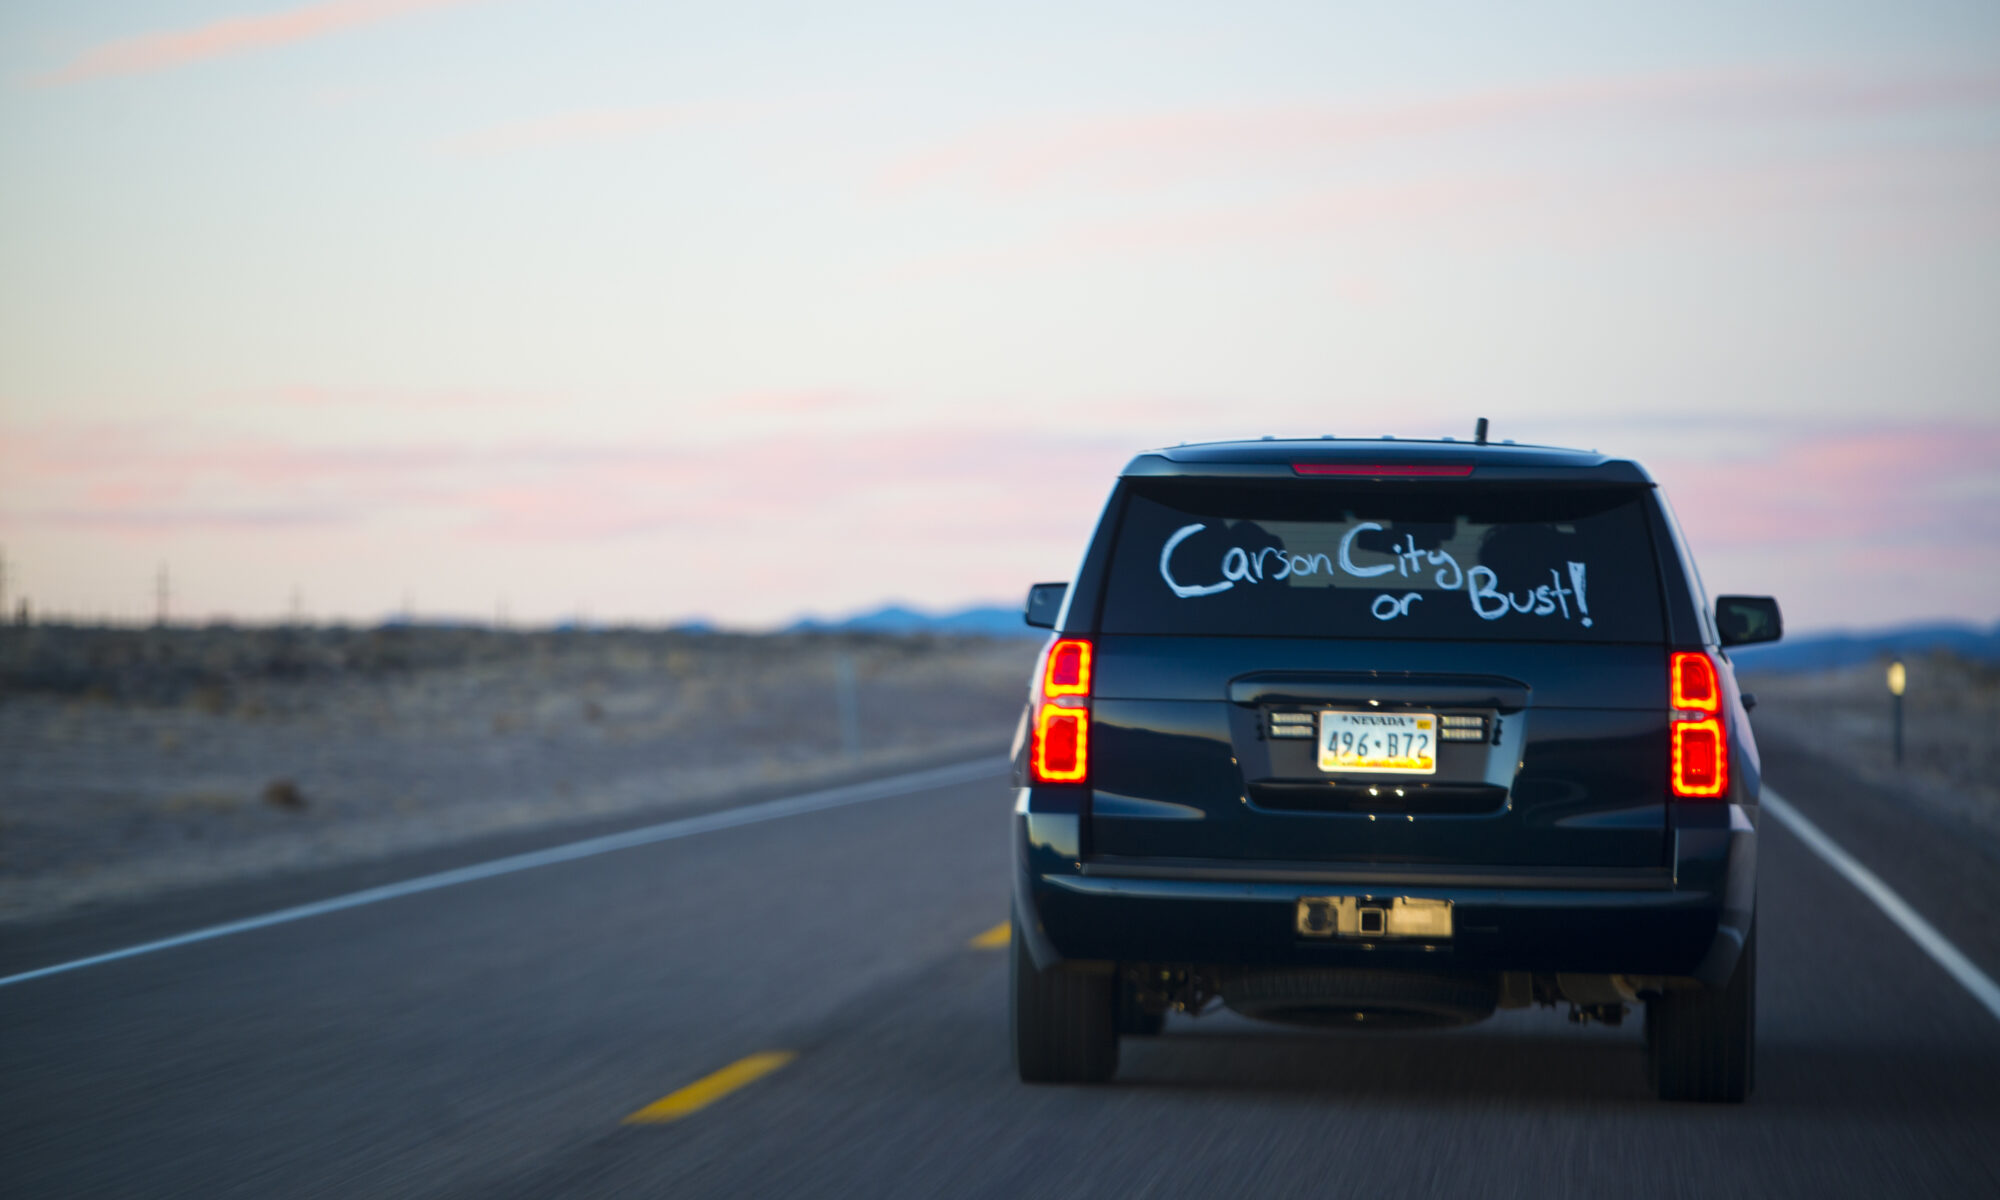 A sport utility vehicle driving on the road at sunset